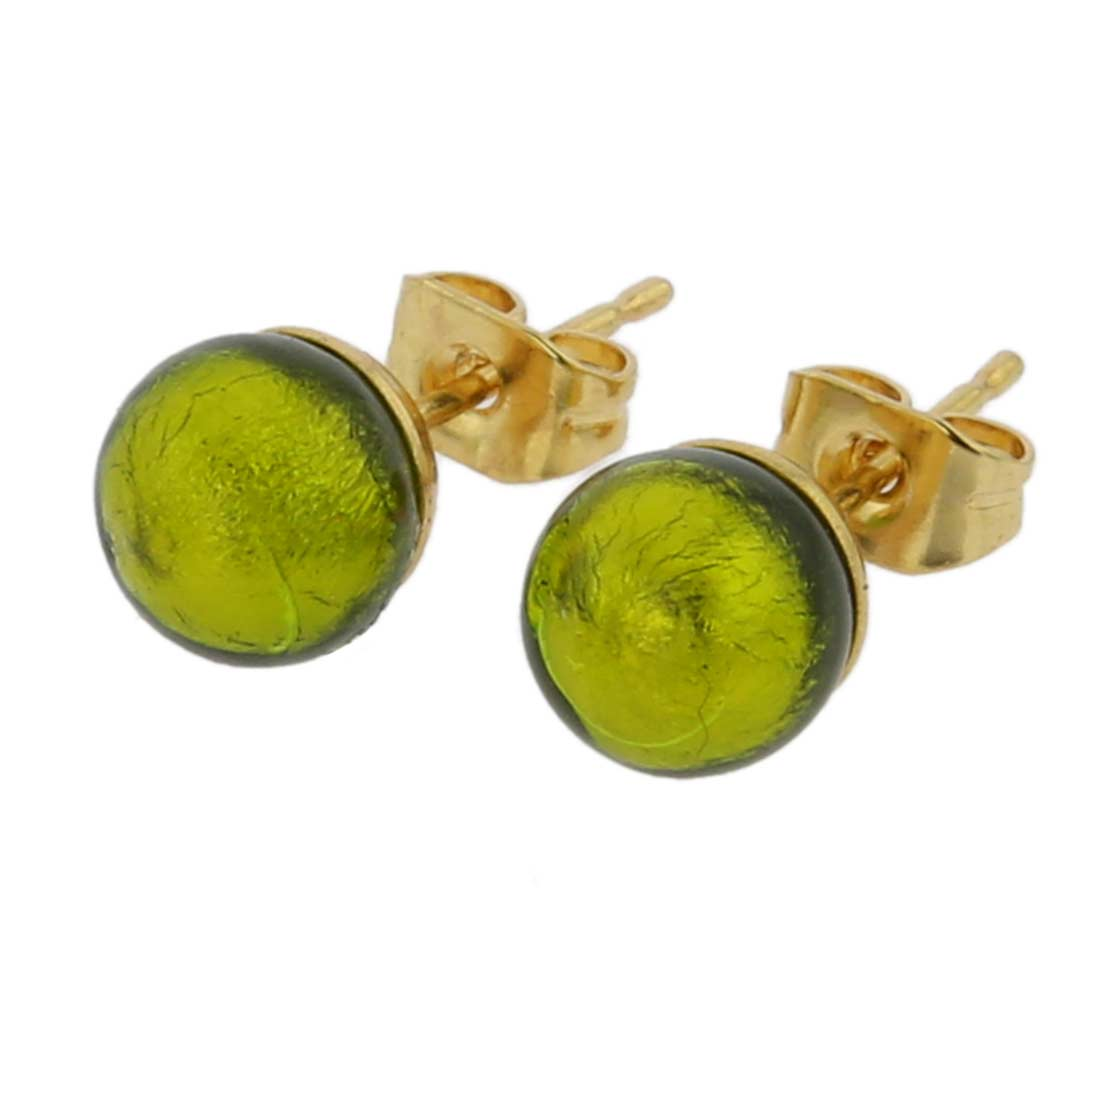 Murano Tiny Stud Earrings - Herb Green